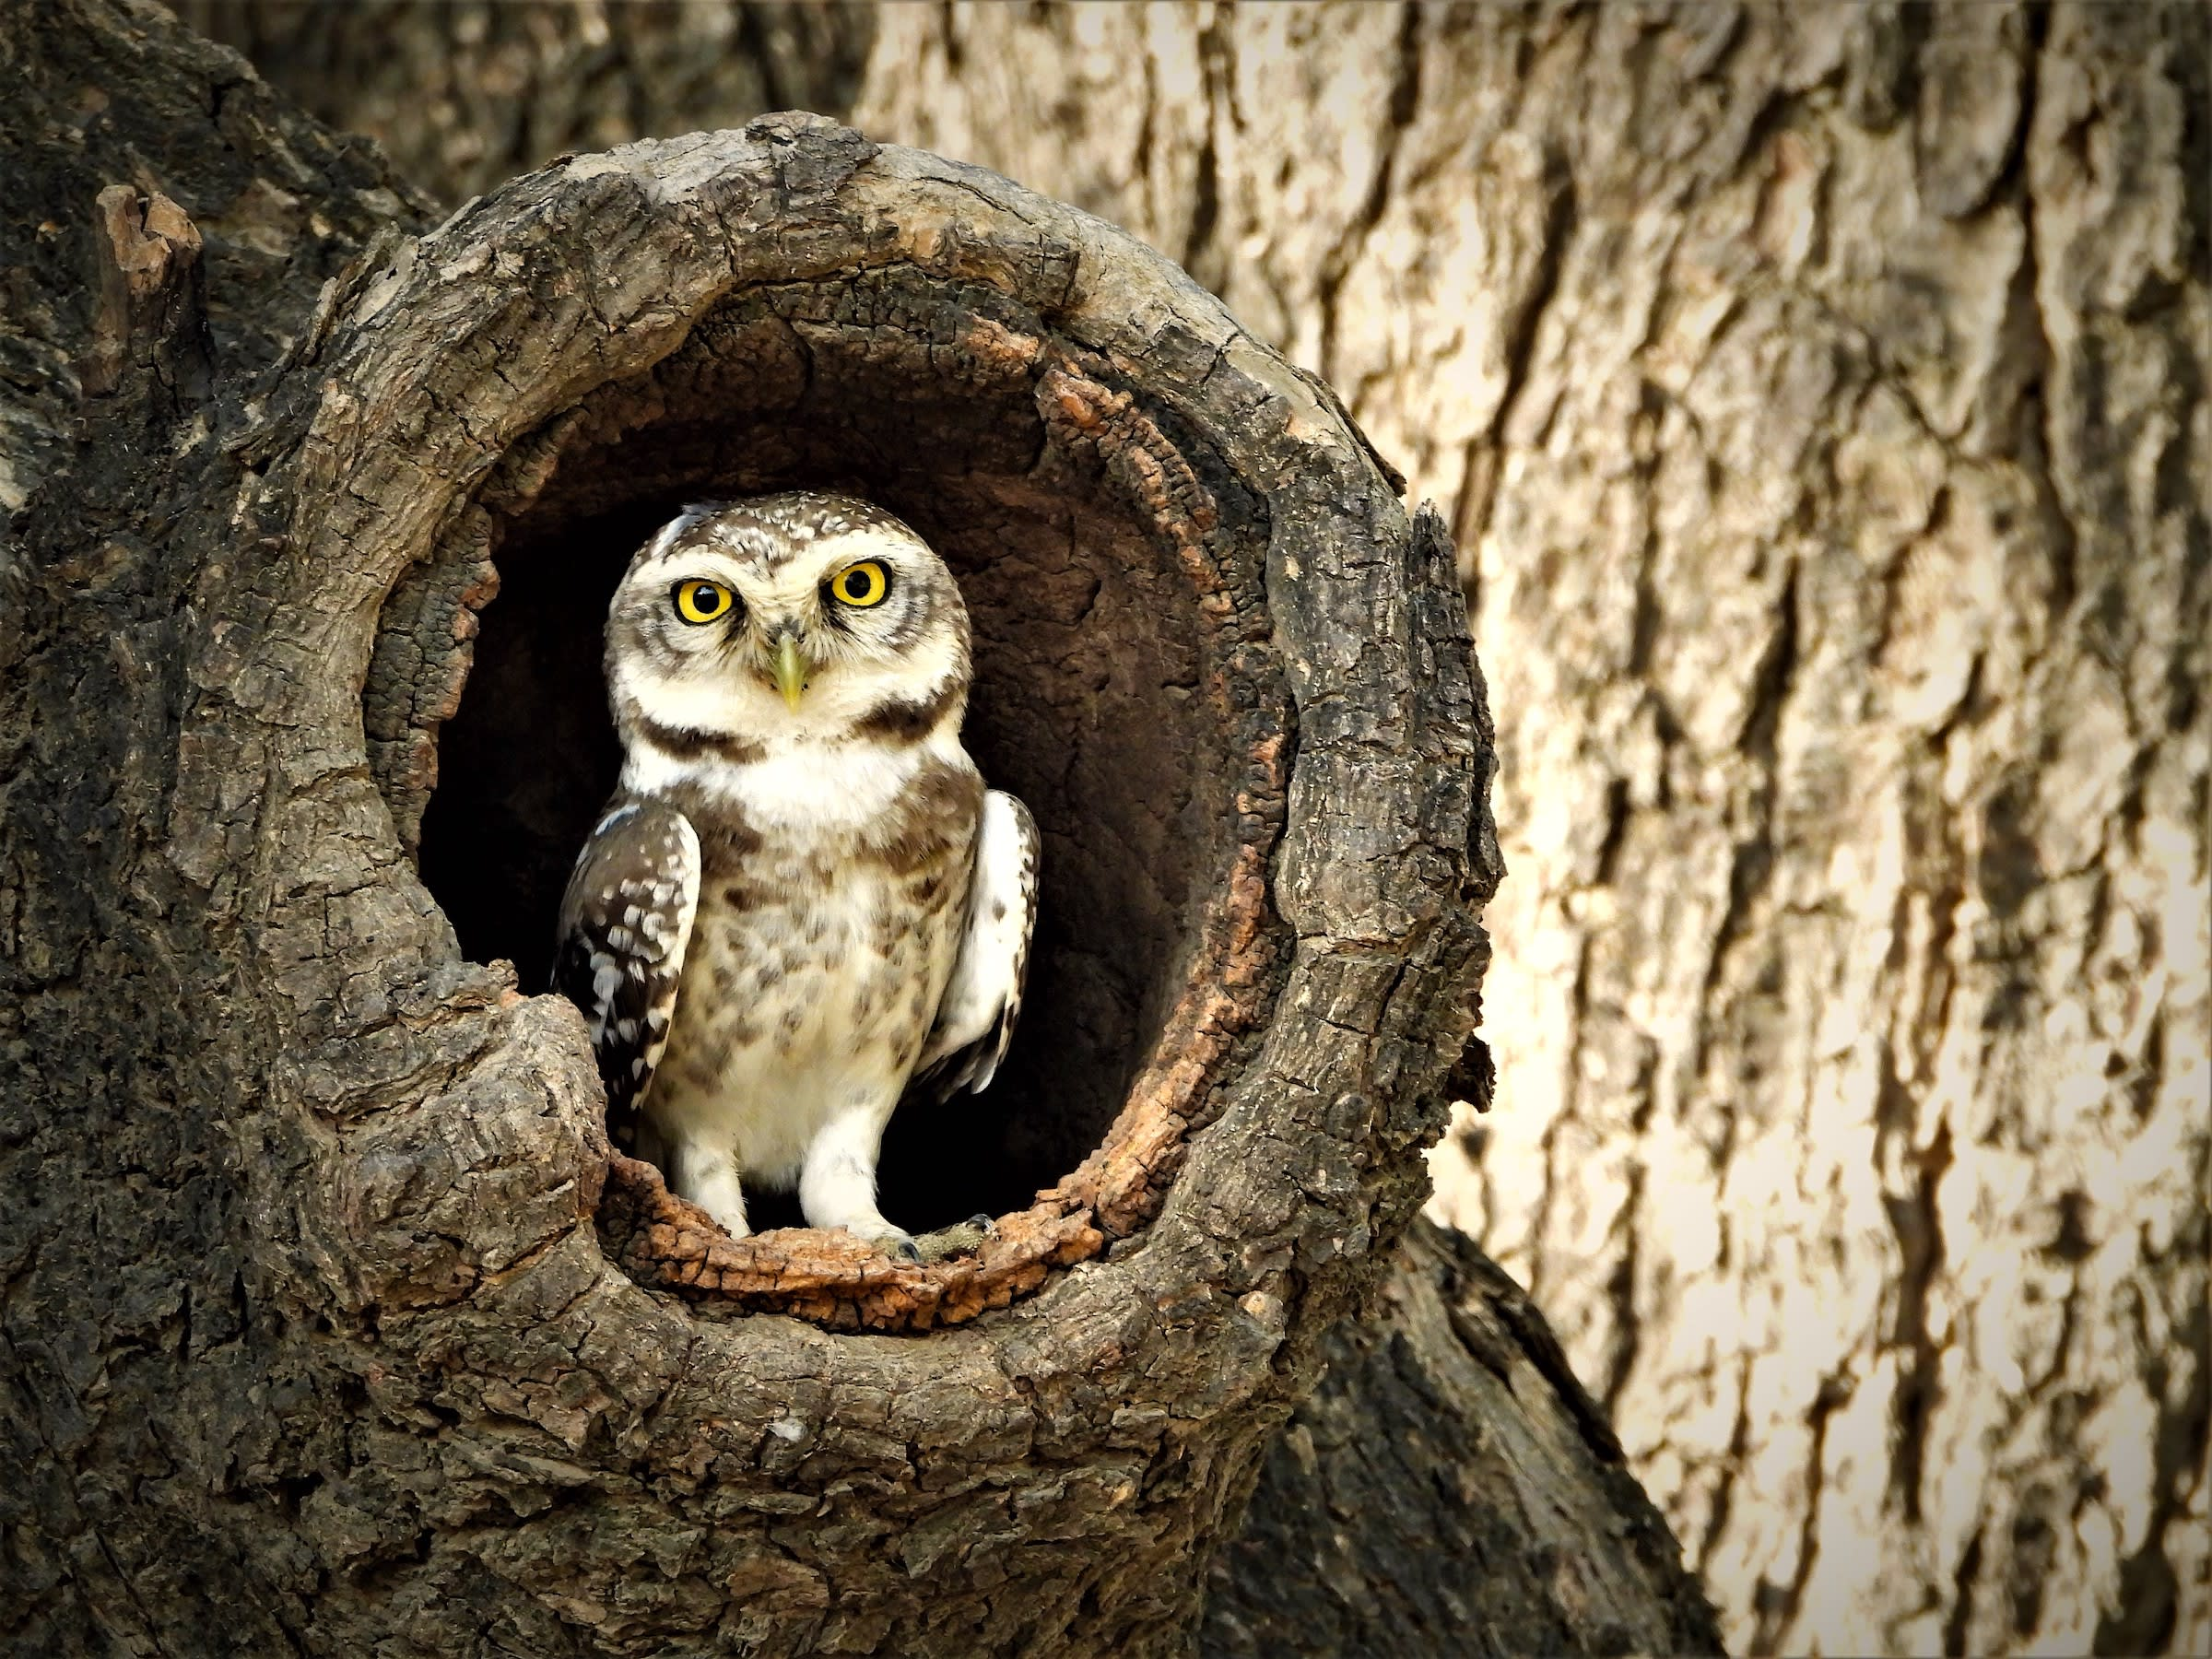 Spotted owlets can be seen roosting in the hollows of trees within the precincts of the sanctuaries as well in the surround areas. Photo: Bheru Bishnoi